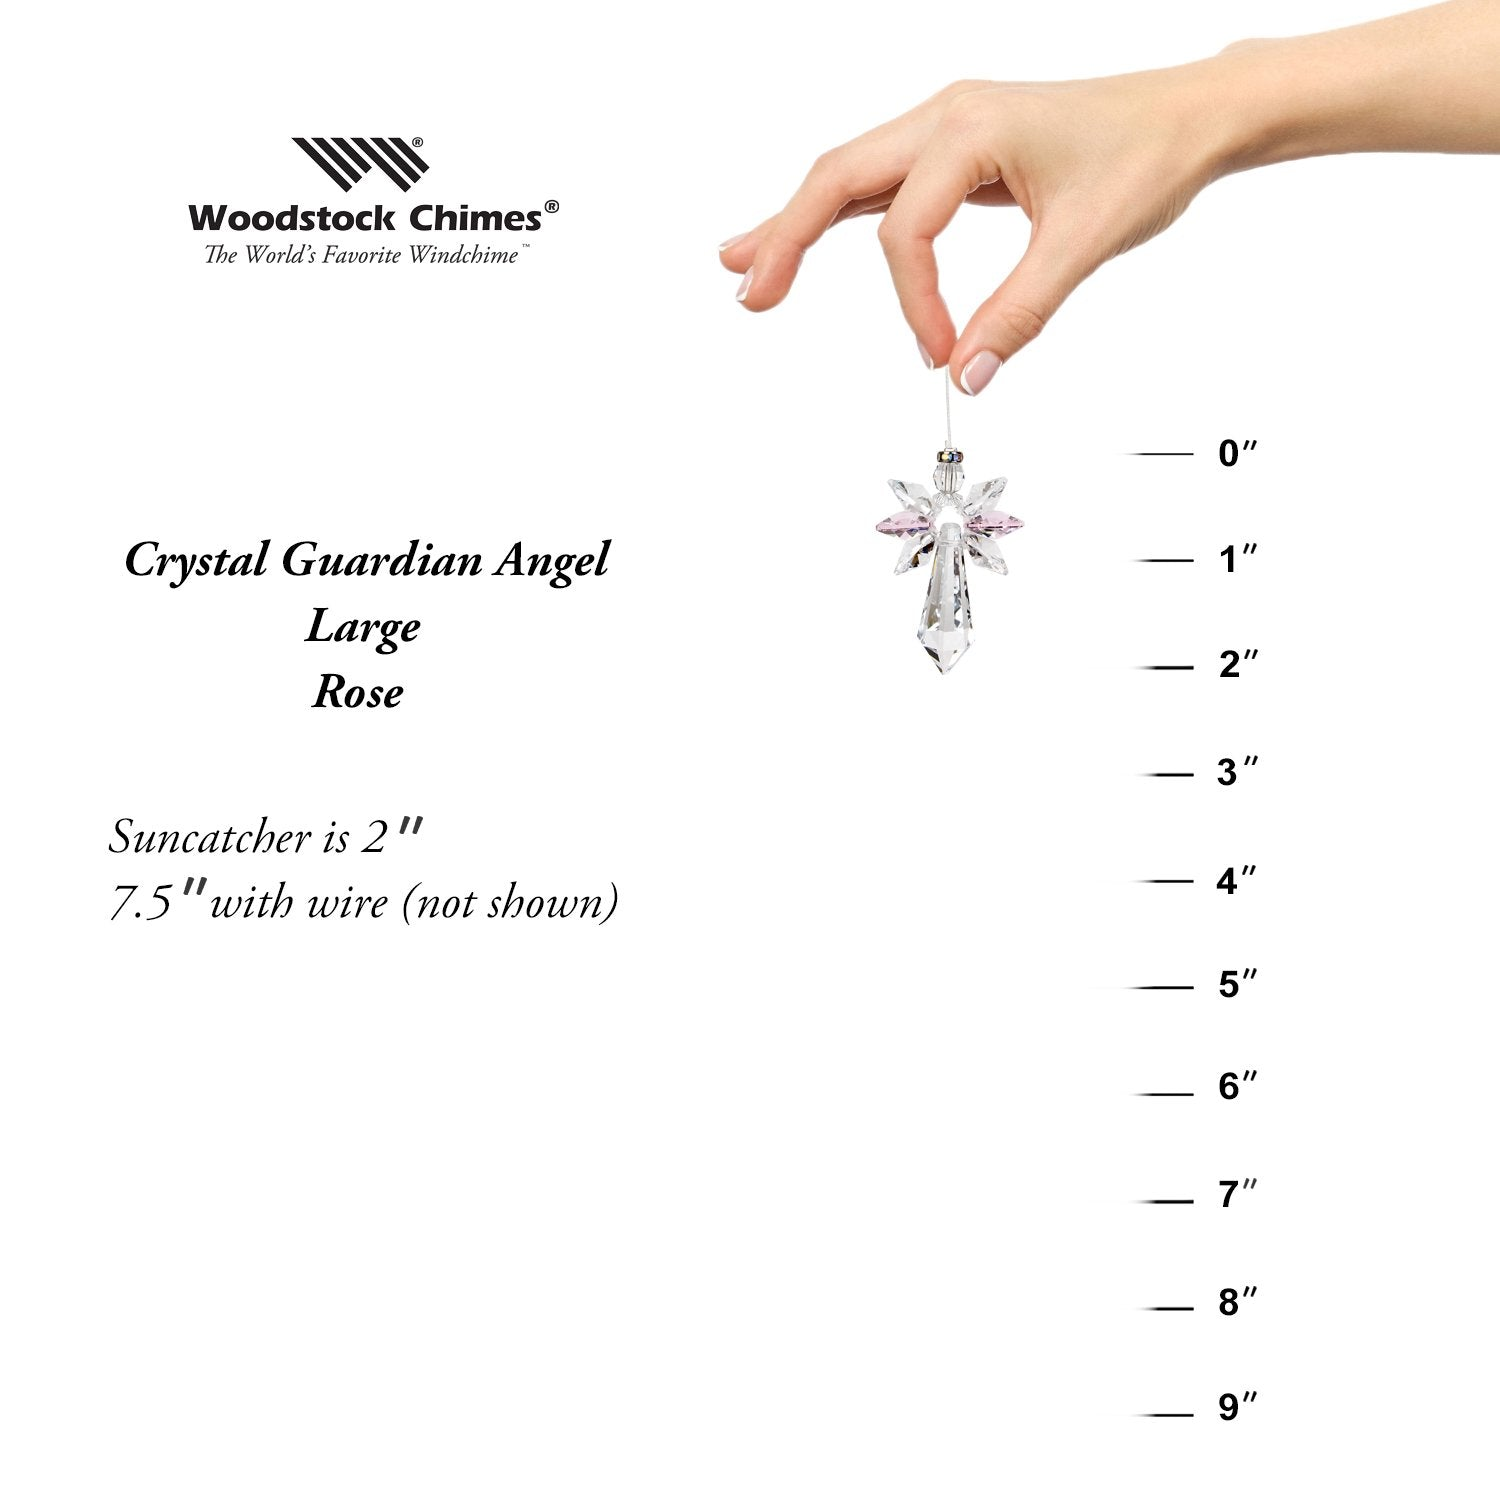 Crystal Guardian Angel Suncatcher - Large, Rose proportion image